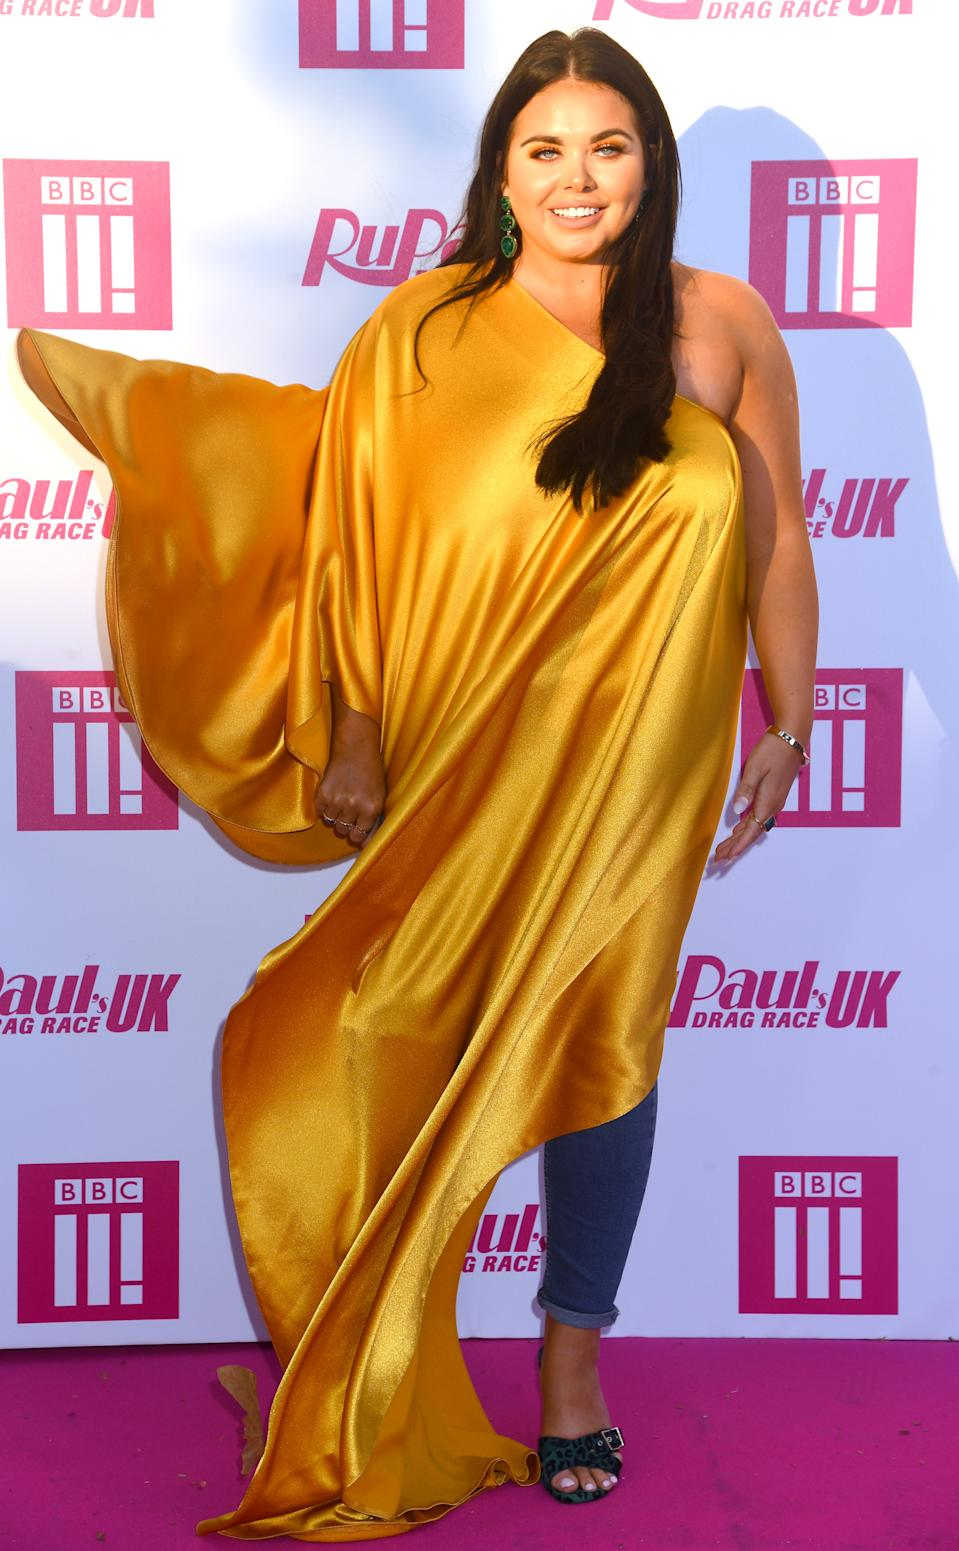 LONDON, ENGLAND - SEPTEMBER 17: Scarlett Moffatt attends Ru Paul's Drag Race UK at  on September 17, 2019 in London, England. (Photo by Dave J Hogan/Getty Images)